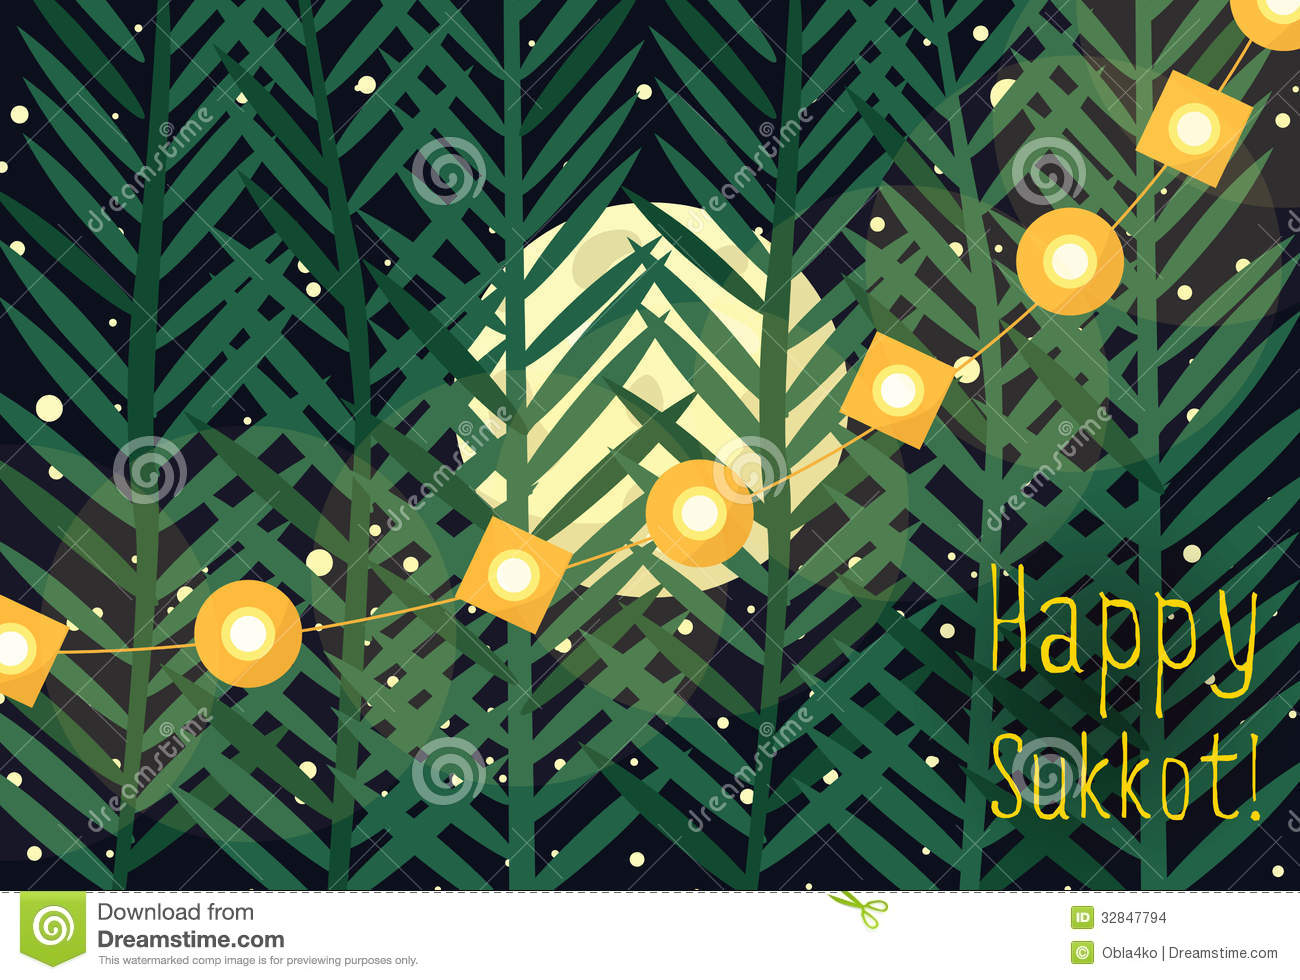 Greeting For Sukkot Stock Vector Illustration Of Orthodox 32847794